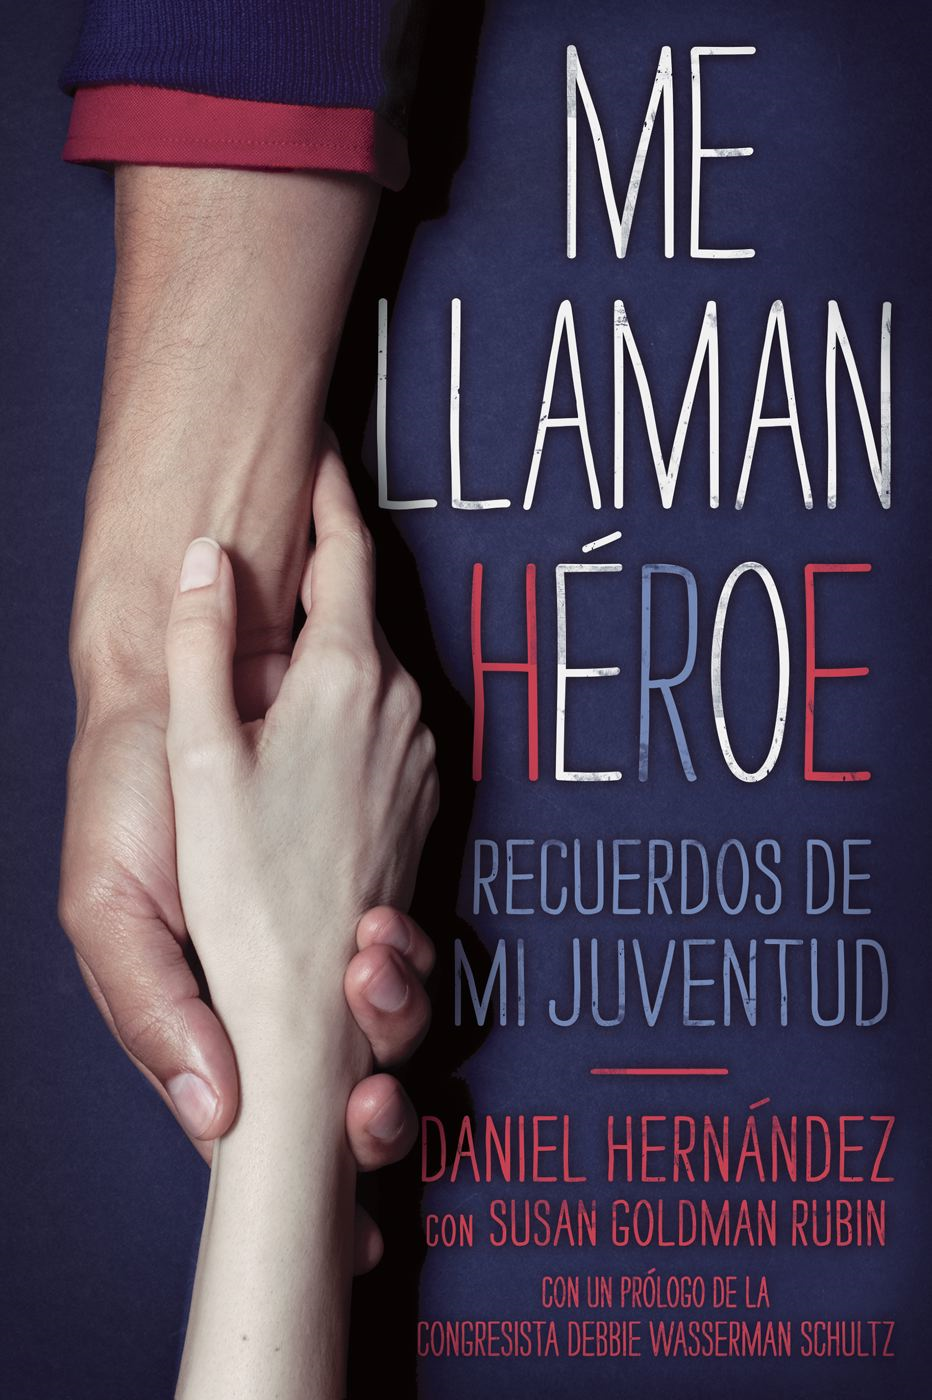 Me llaman heroe (They Call Me a Hero)